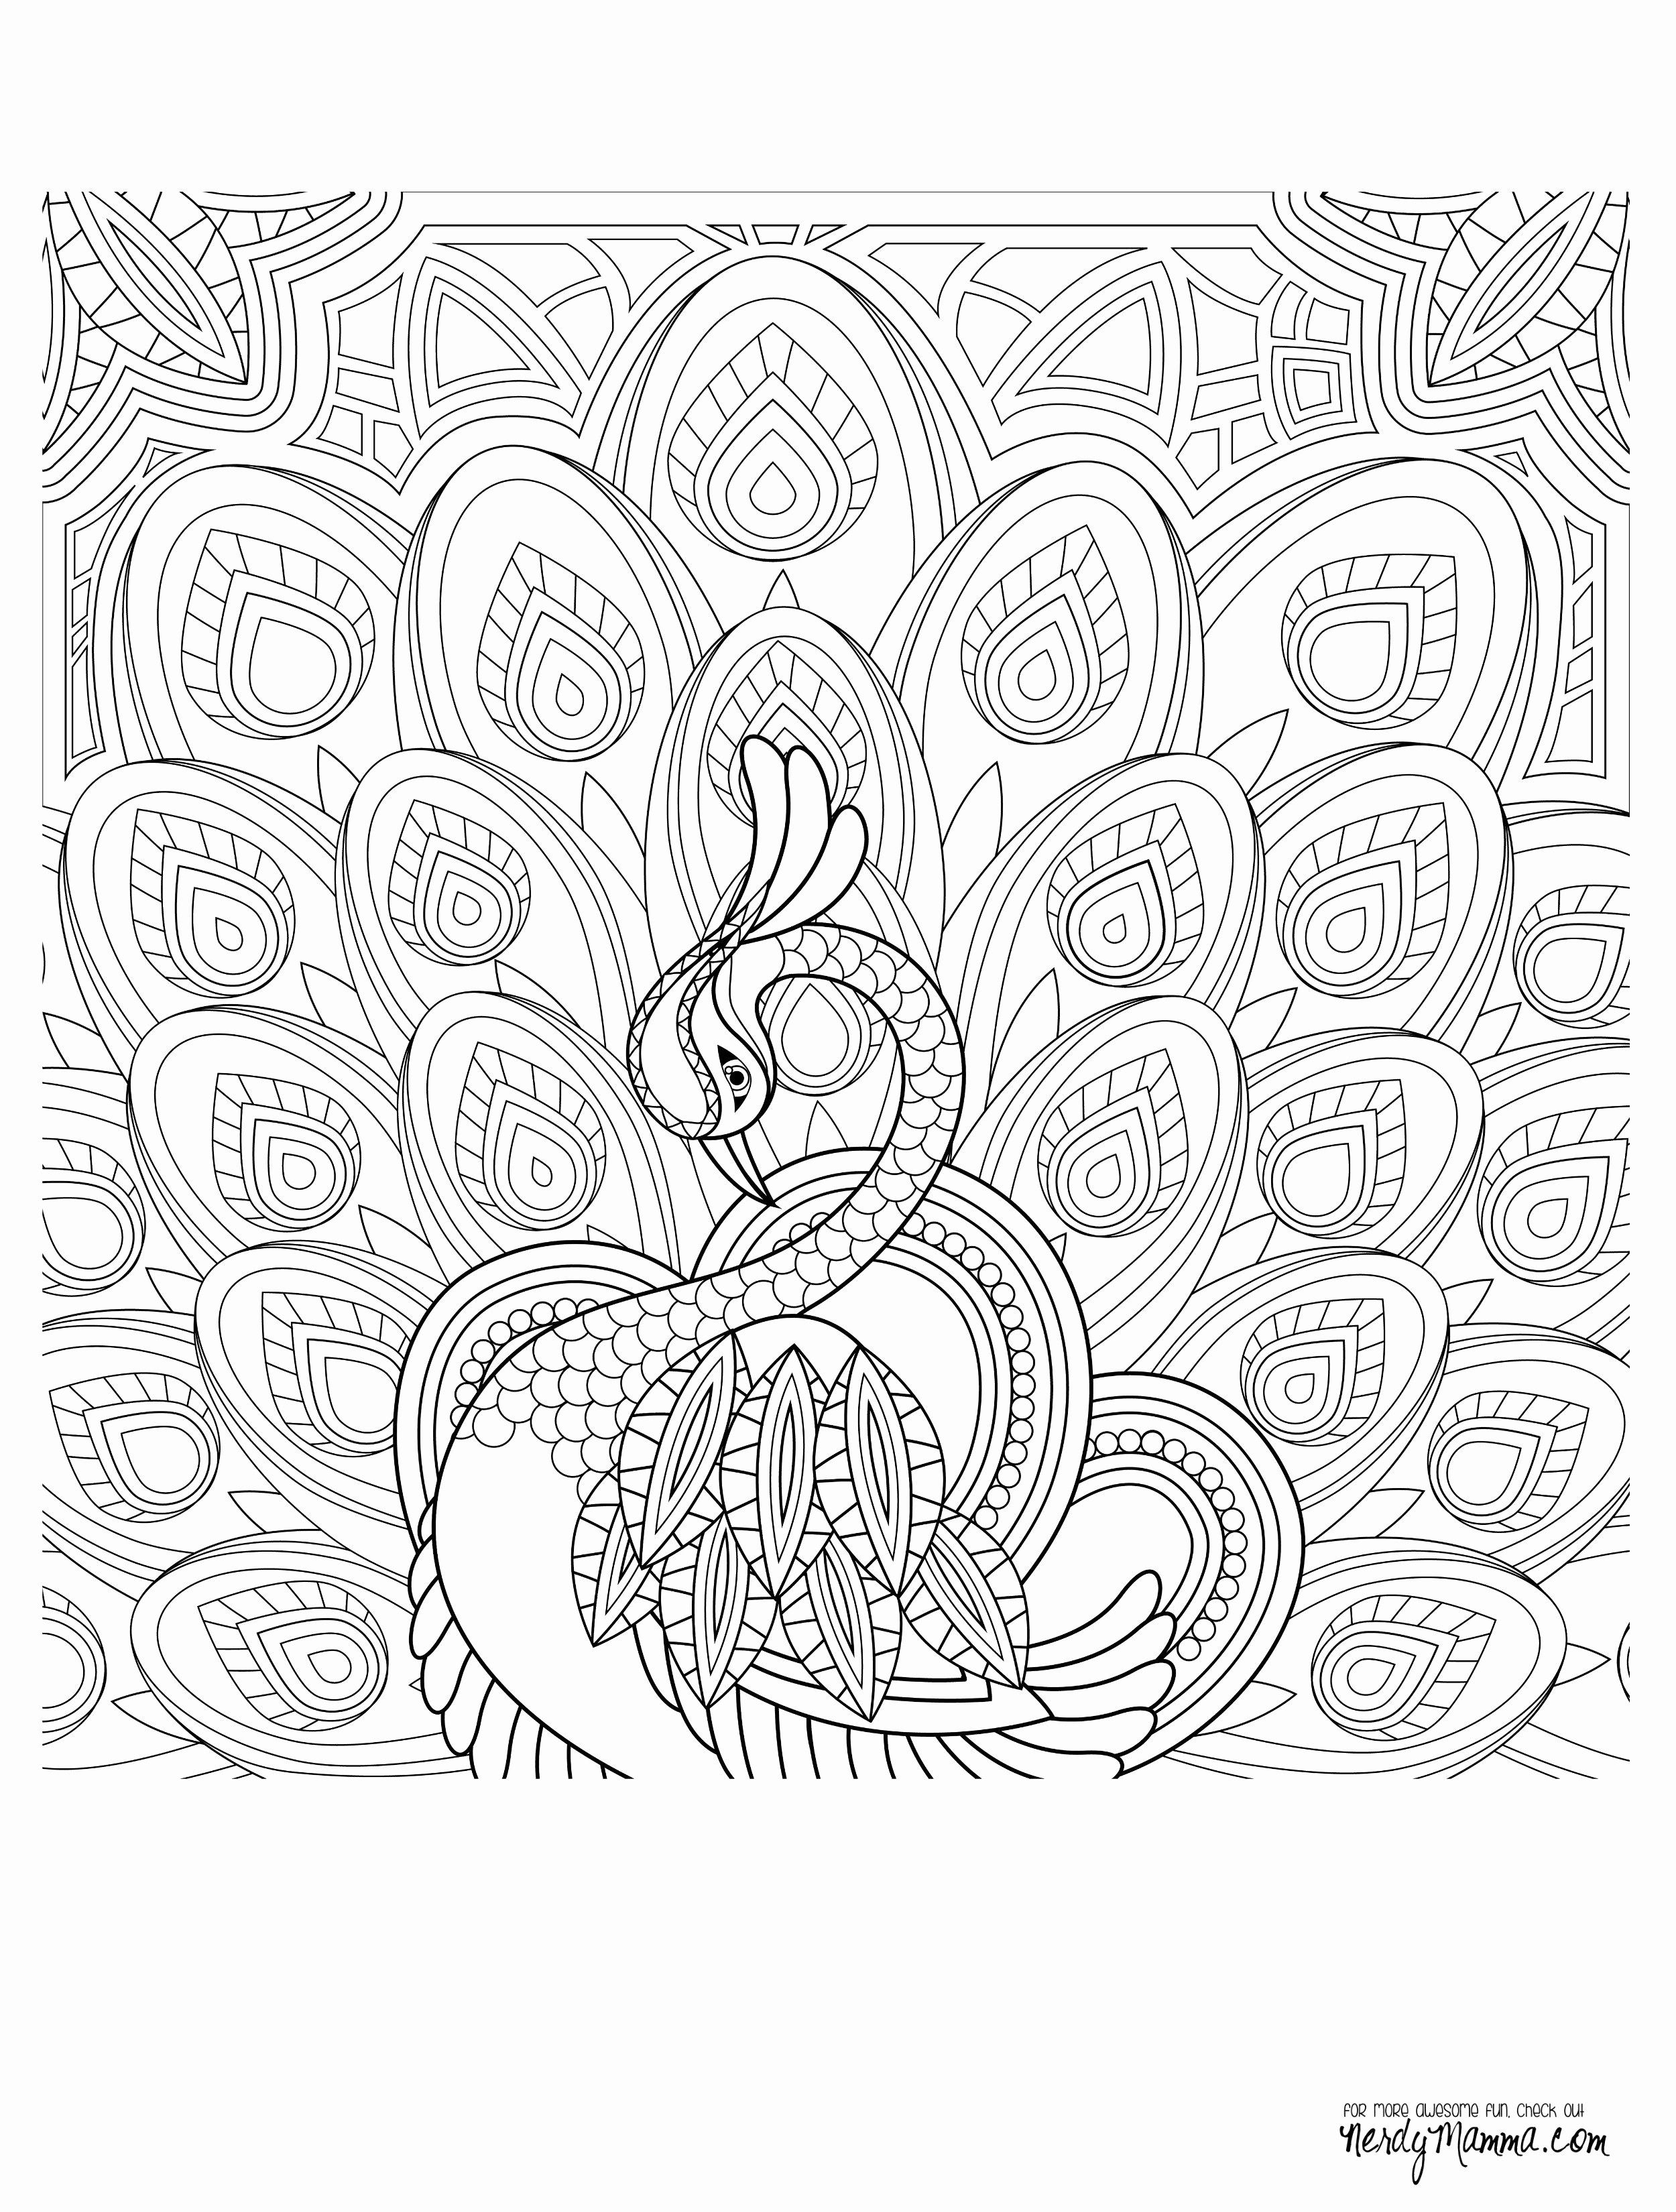 Koi Coloring Pages  Printable 13s - To print for your project